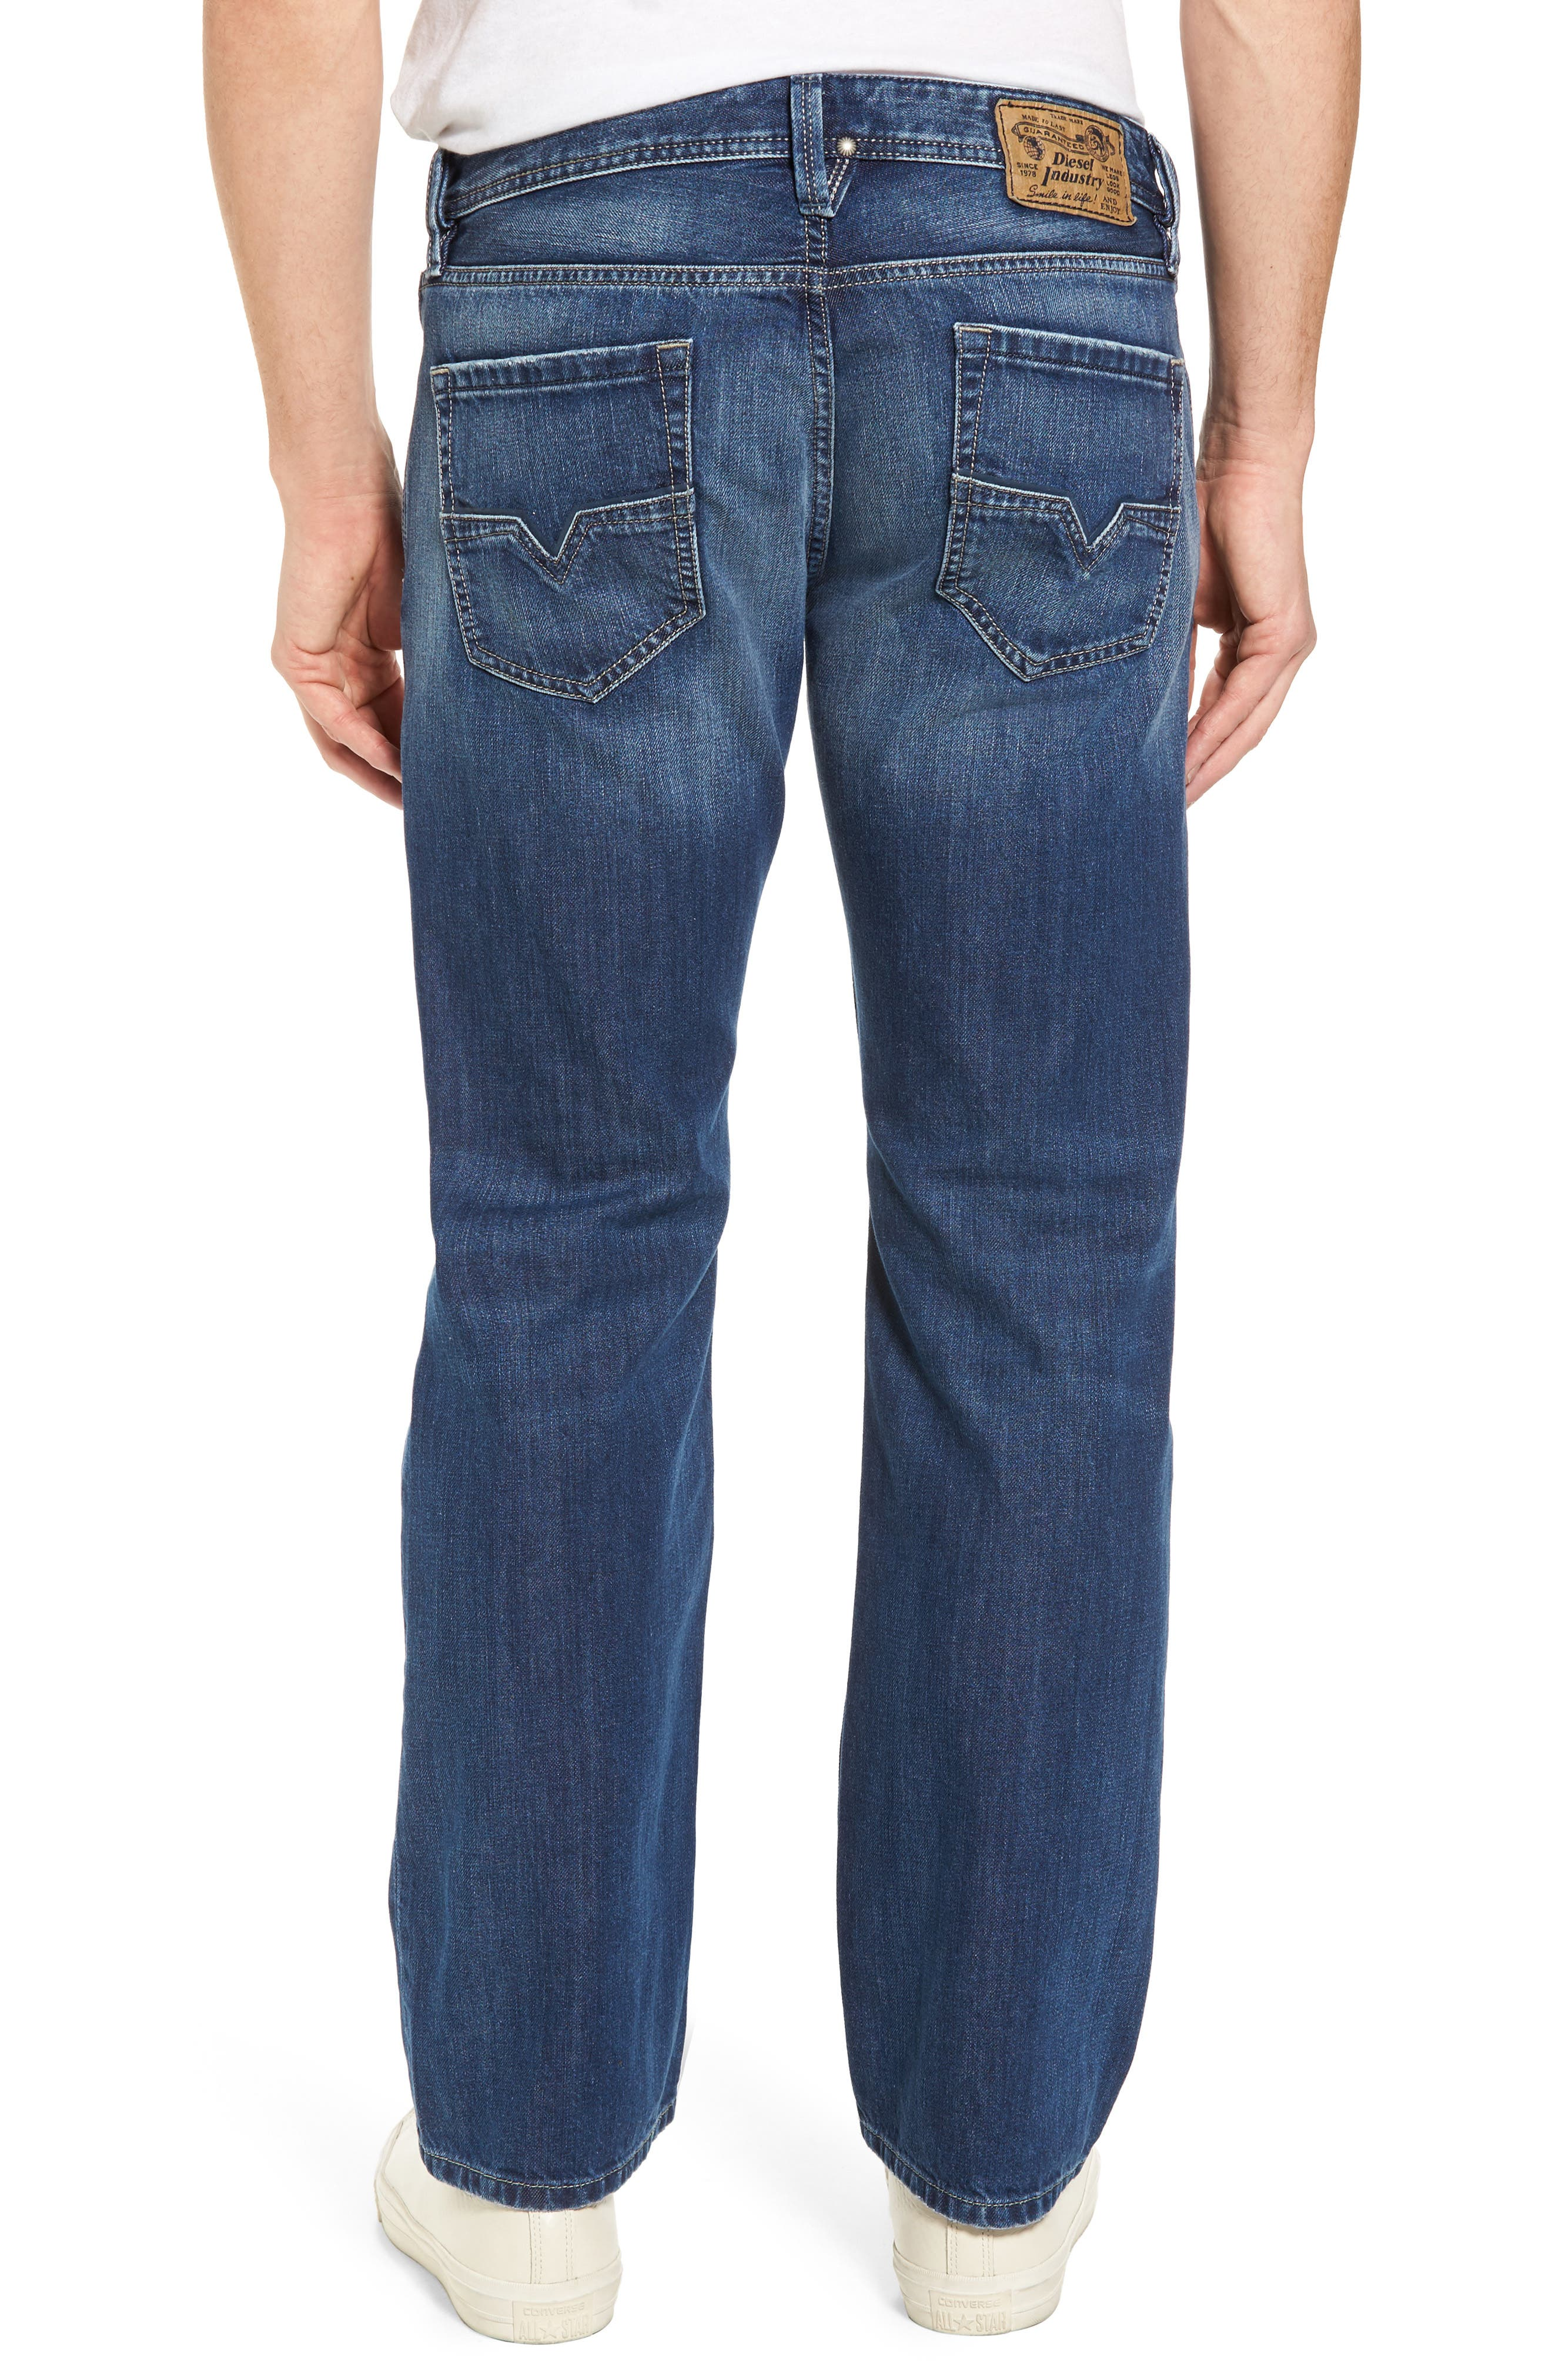 Larkee Relaxed Fit Jeans,                             Alternate thumbnail 2, color,                             400